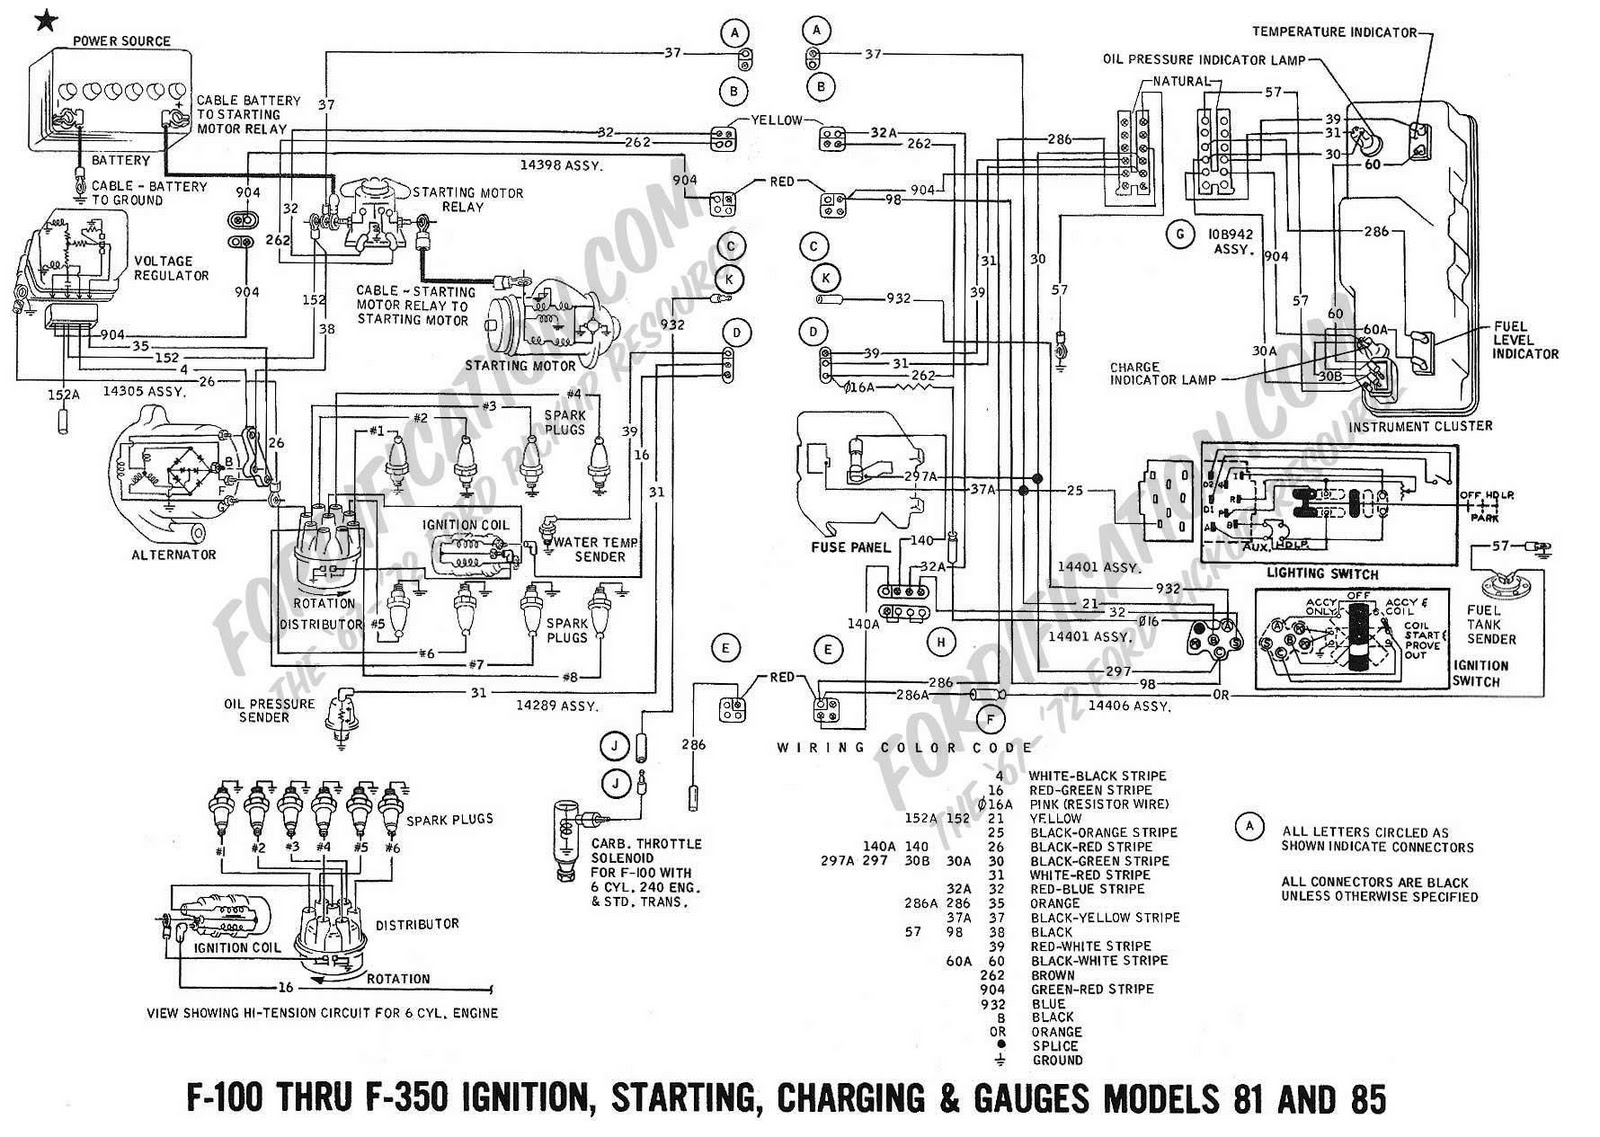 76 ford ltd ignition wiring diagram wiring diagram todays ford truck alternator diagram 1974 ford ltd alternator wiring [ 1600 x 1137 Pixel ]